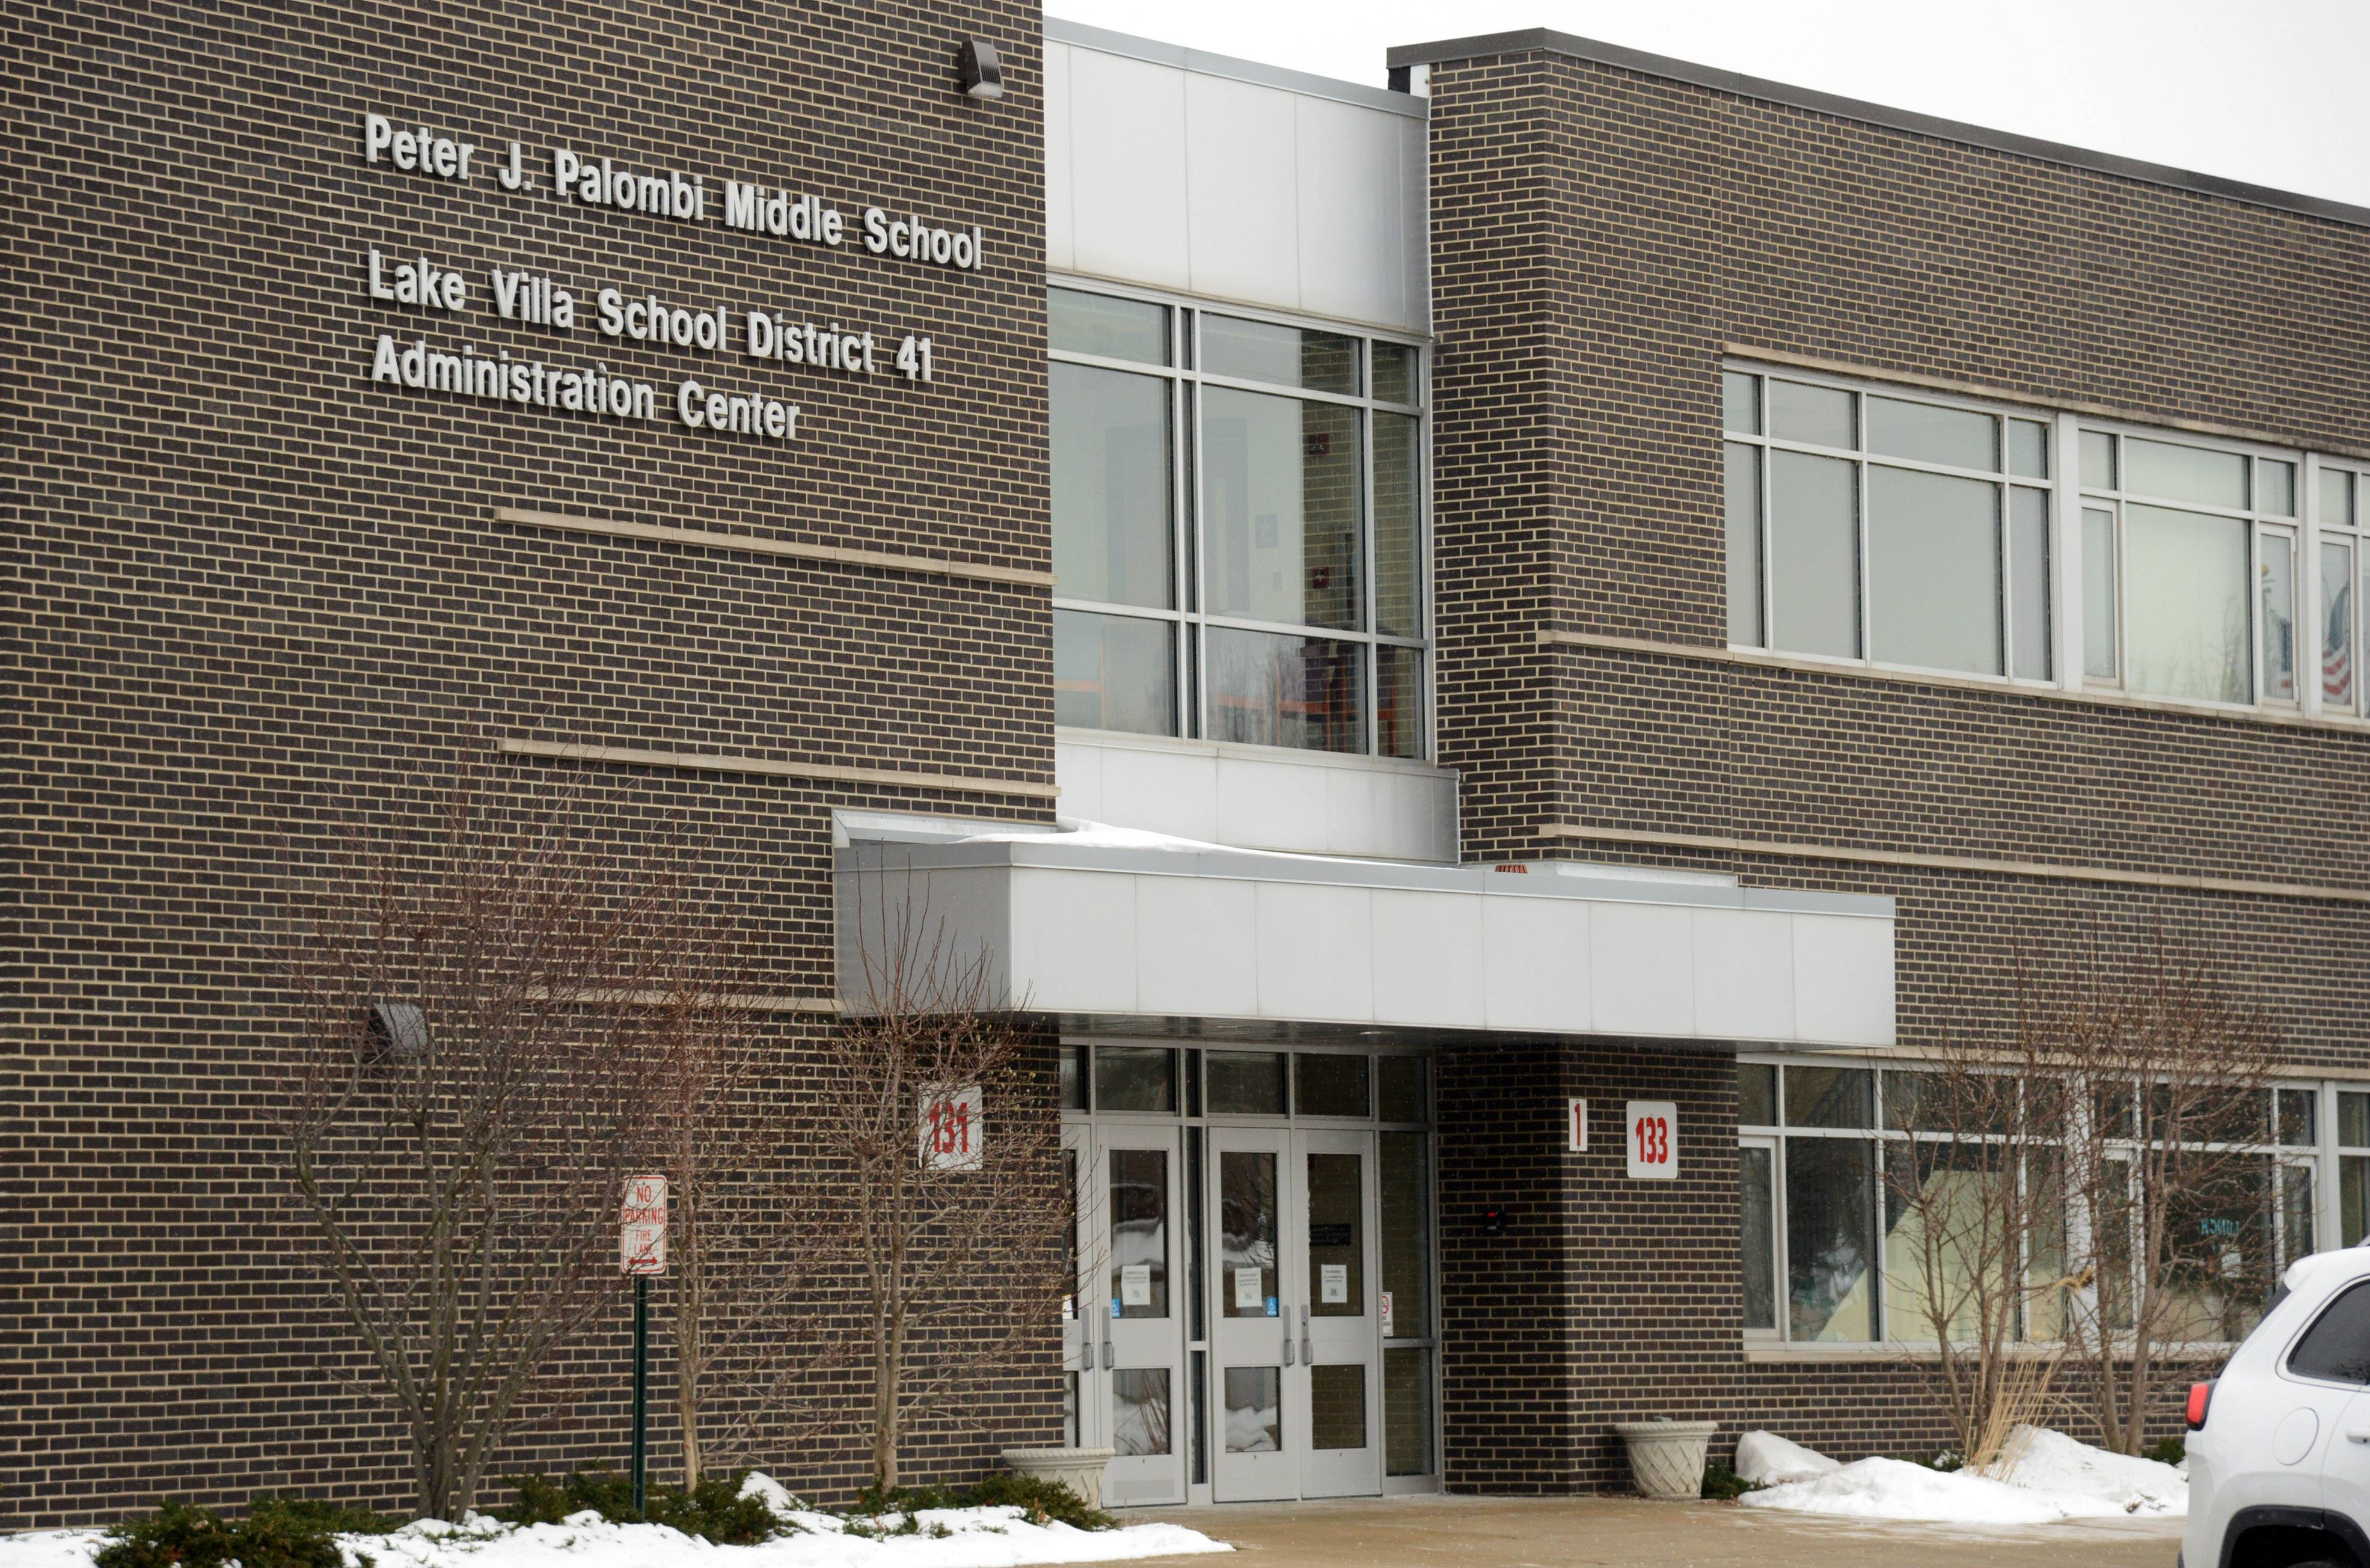 Lake Villa Elementary District 41 officials have proposed raising $50 million over 20 years to pay for building improvements and maintenance.